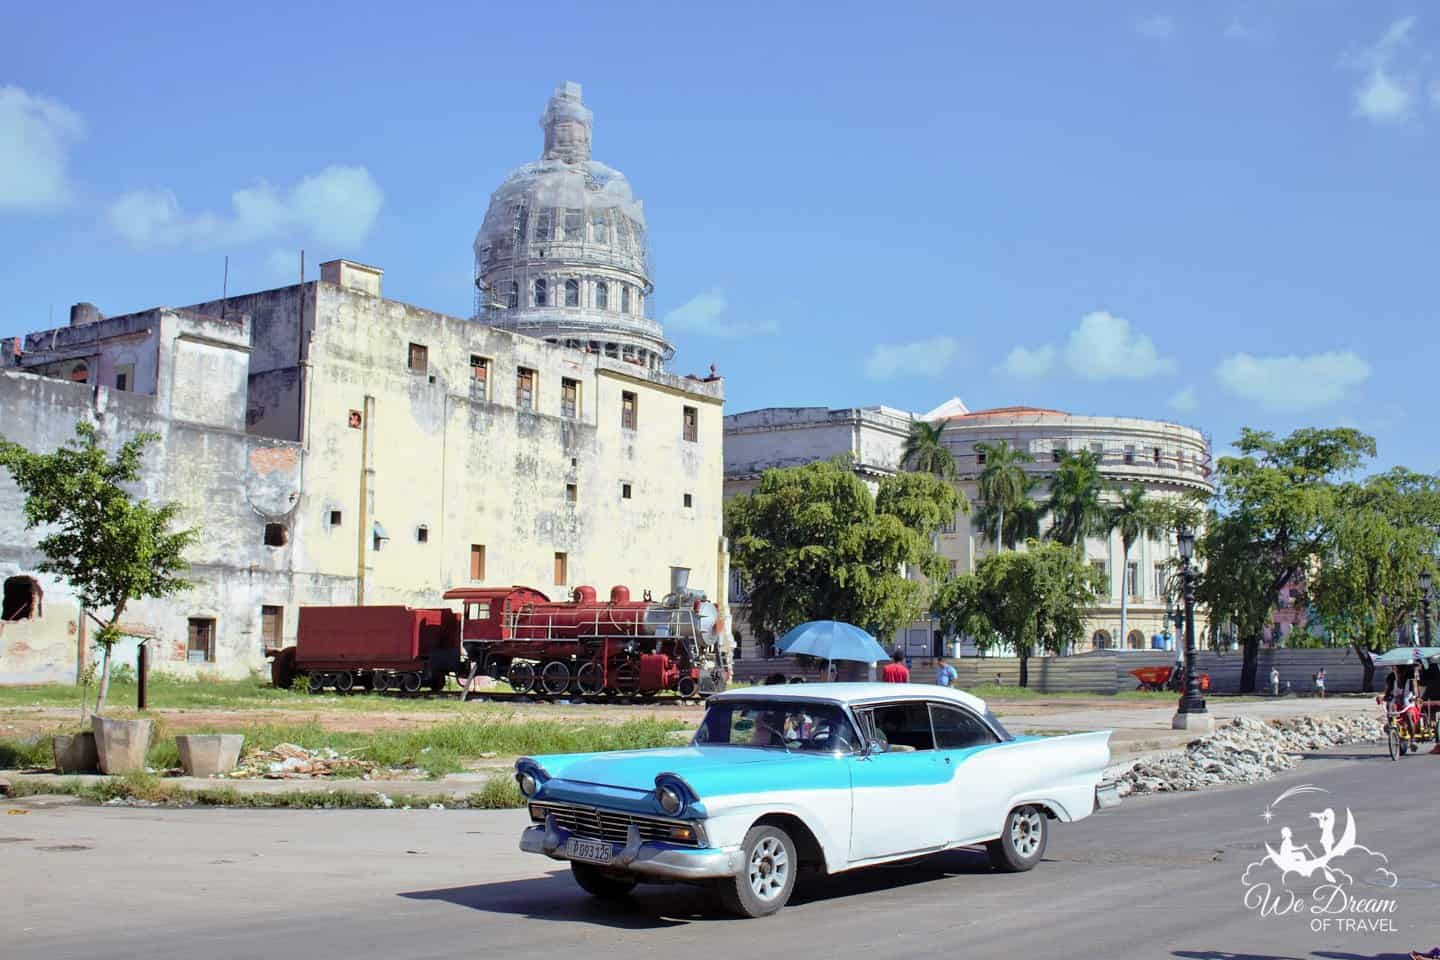 Havana is one of the most unique and culturally vibrant cities in the world.